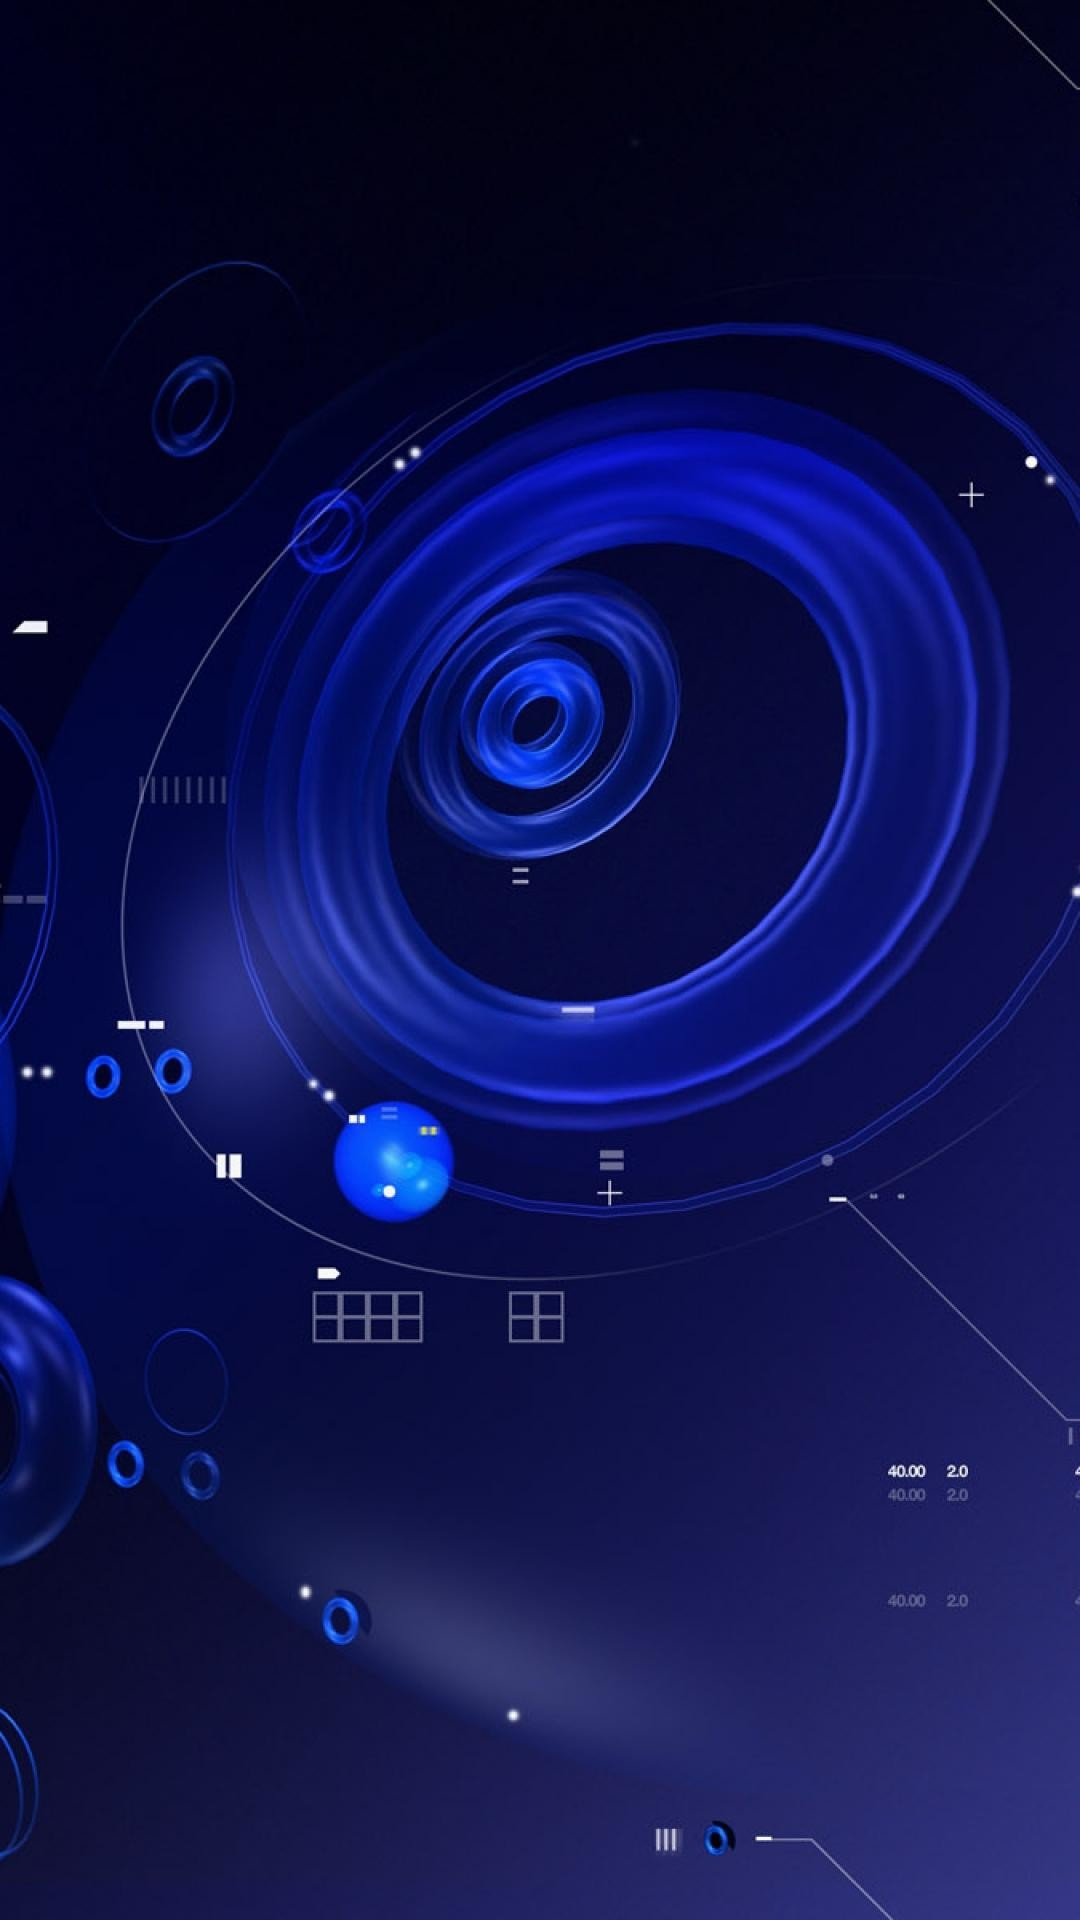 1080x1920 Android Abstract wallpaper full-hd-  blue_black_abstract_white_circles_numbers